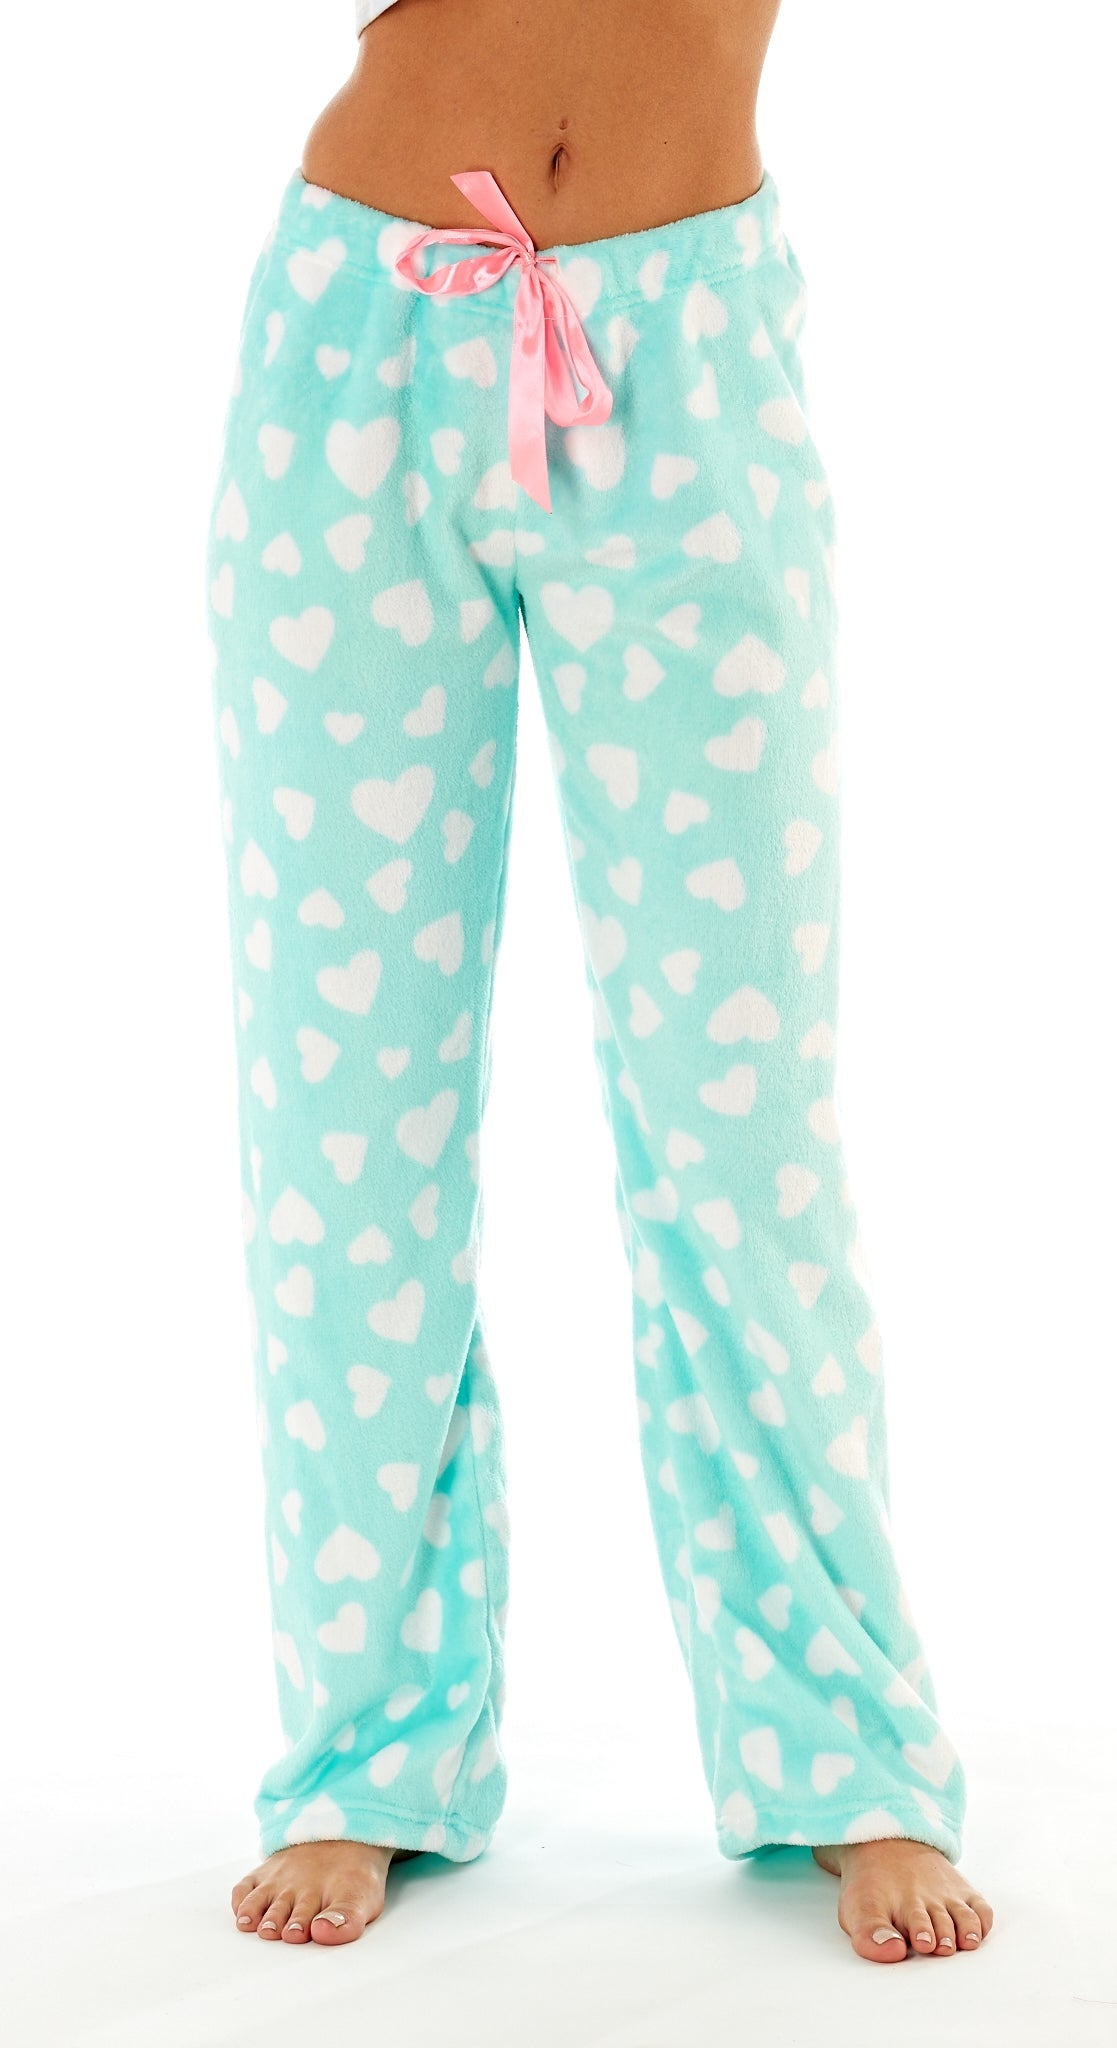 Octave Ladies Loungewear Pants Pyjama Bottoms - Aqua Hearts